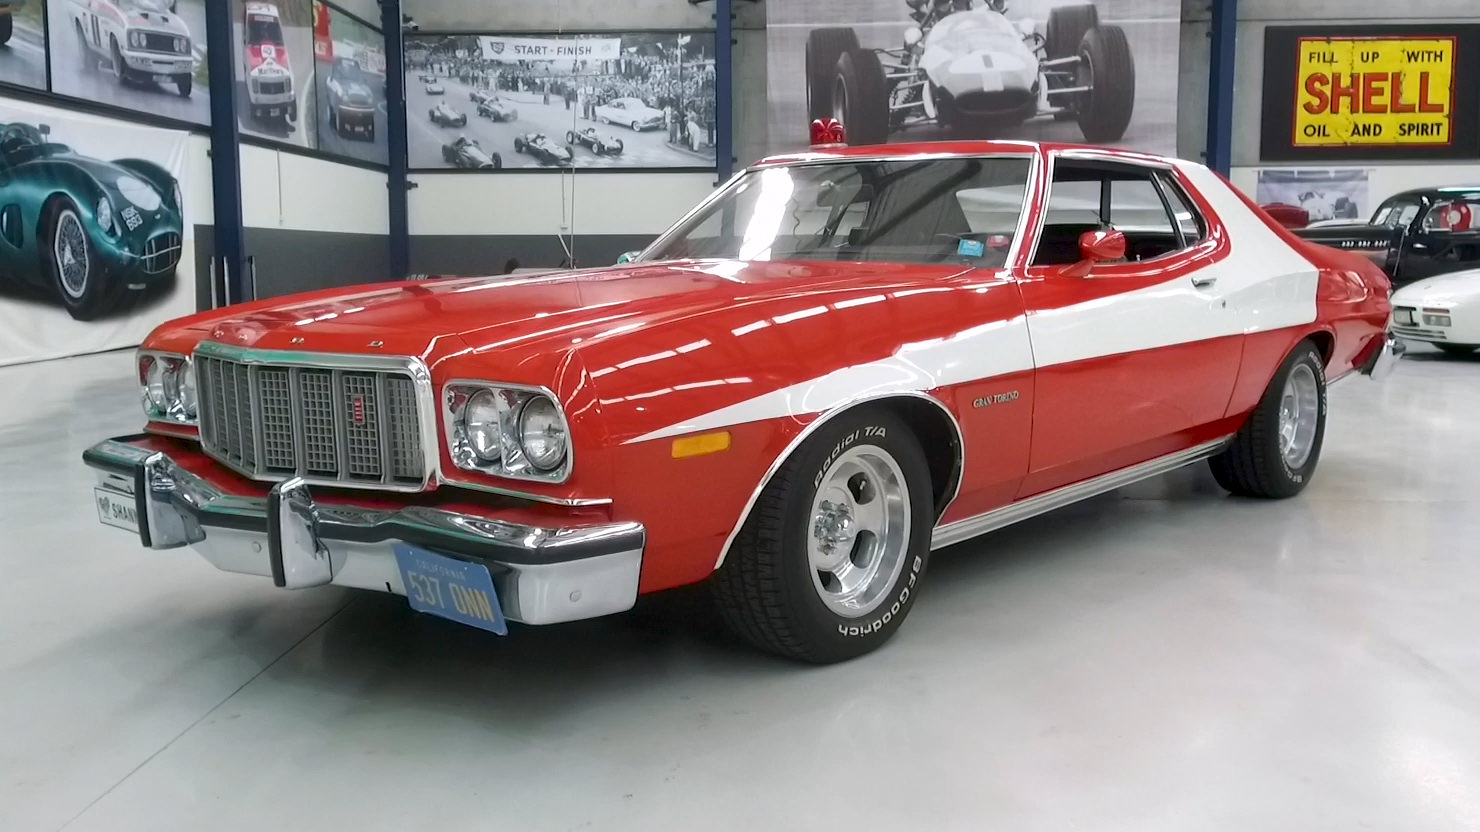 1976 Ford Gran Torino 460 'Modified' Coupe (LHD) - 2021 Shannons Summer Timed Online Auction